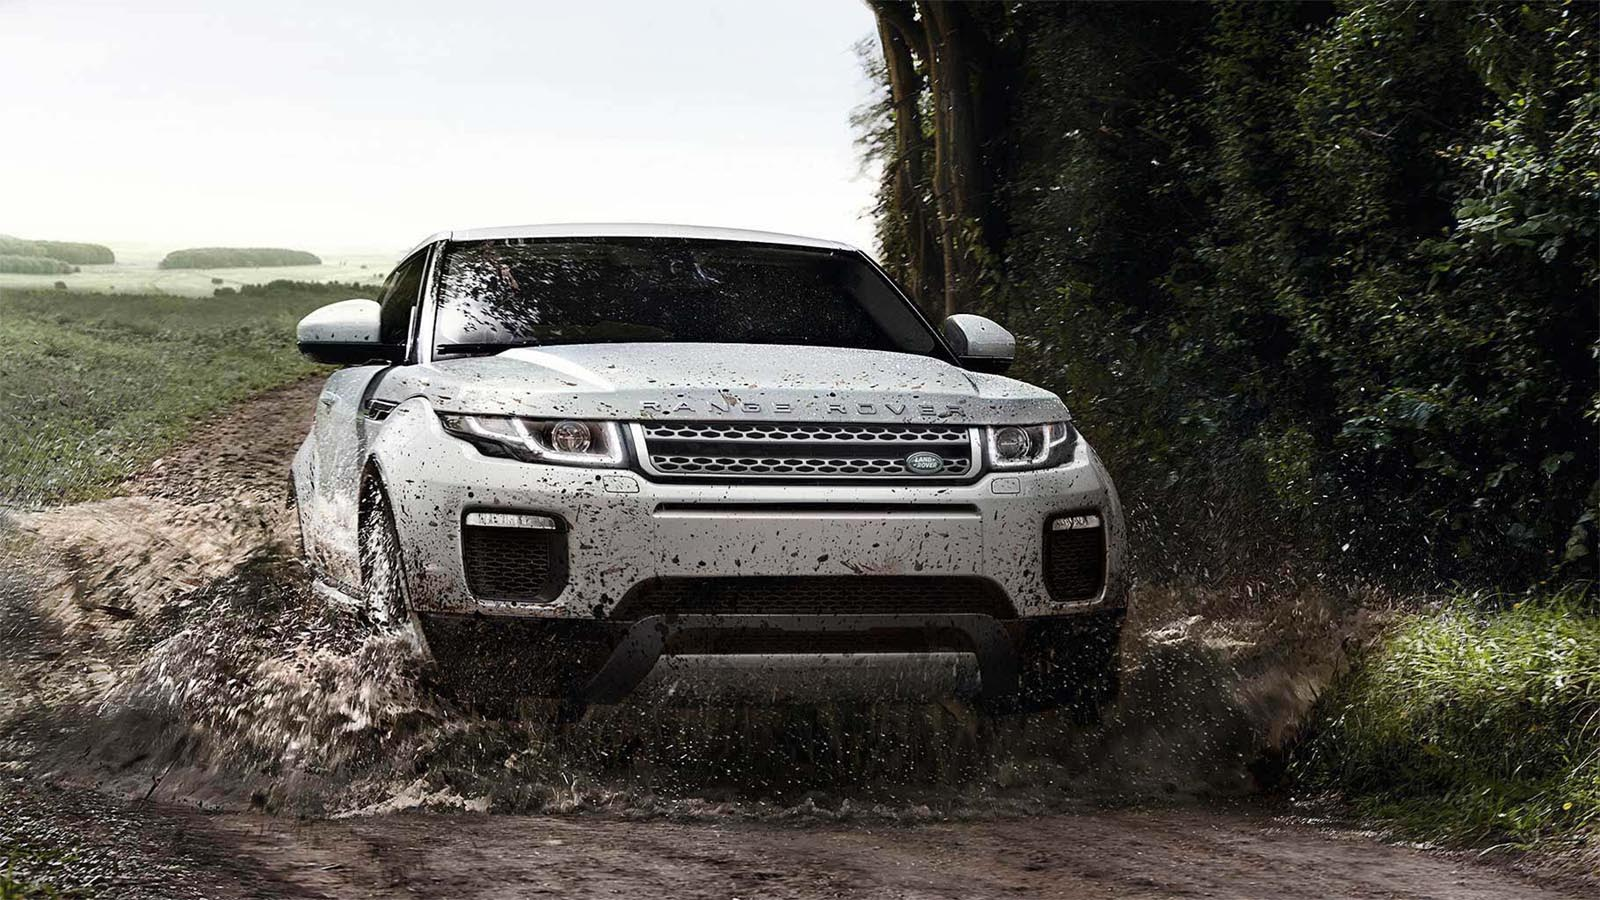 Range Rover Evoque driving safely on a muddy track. 19MY Shown.